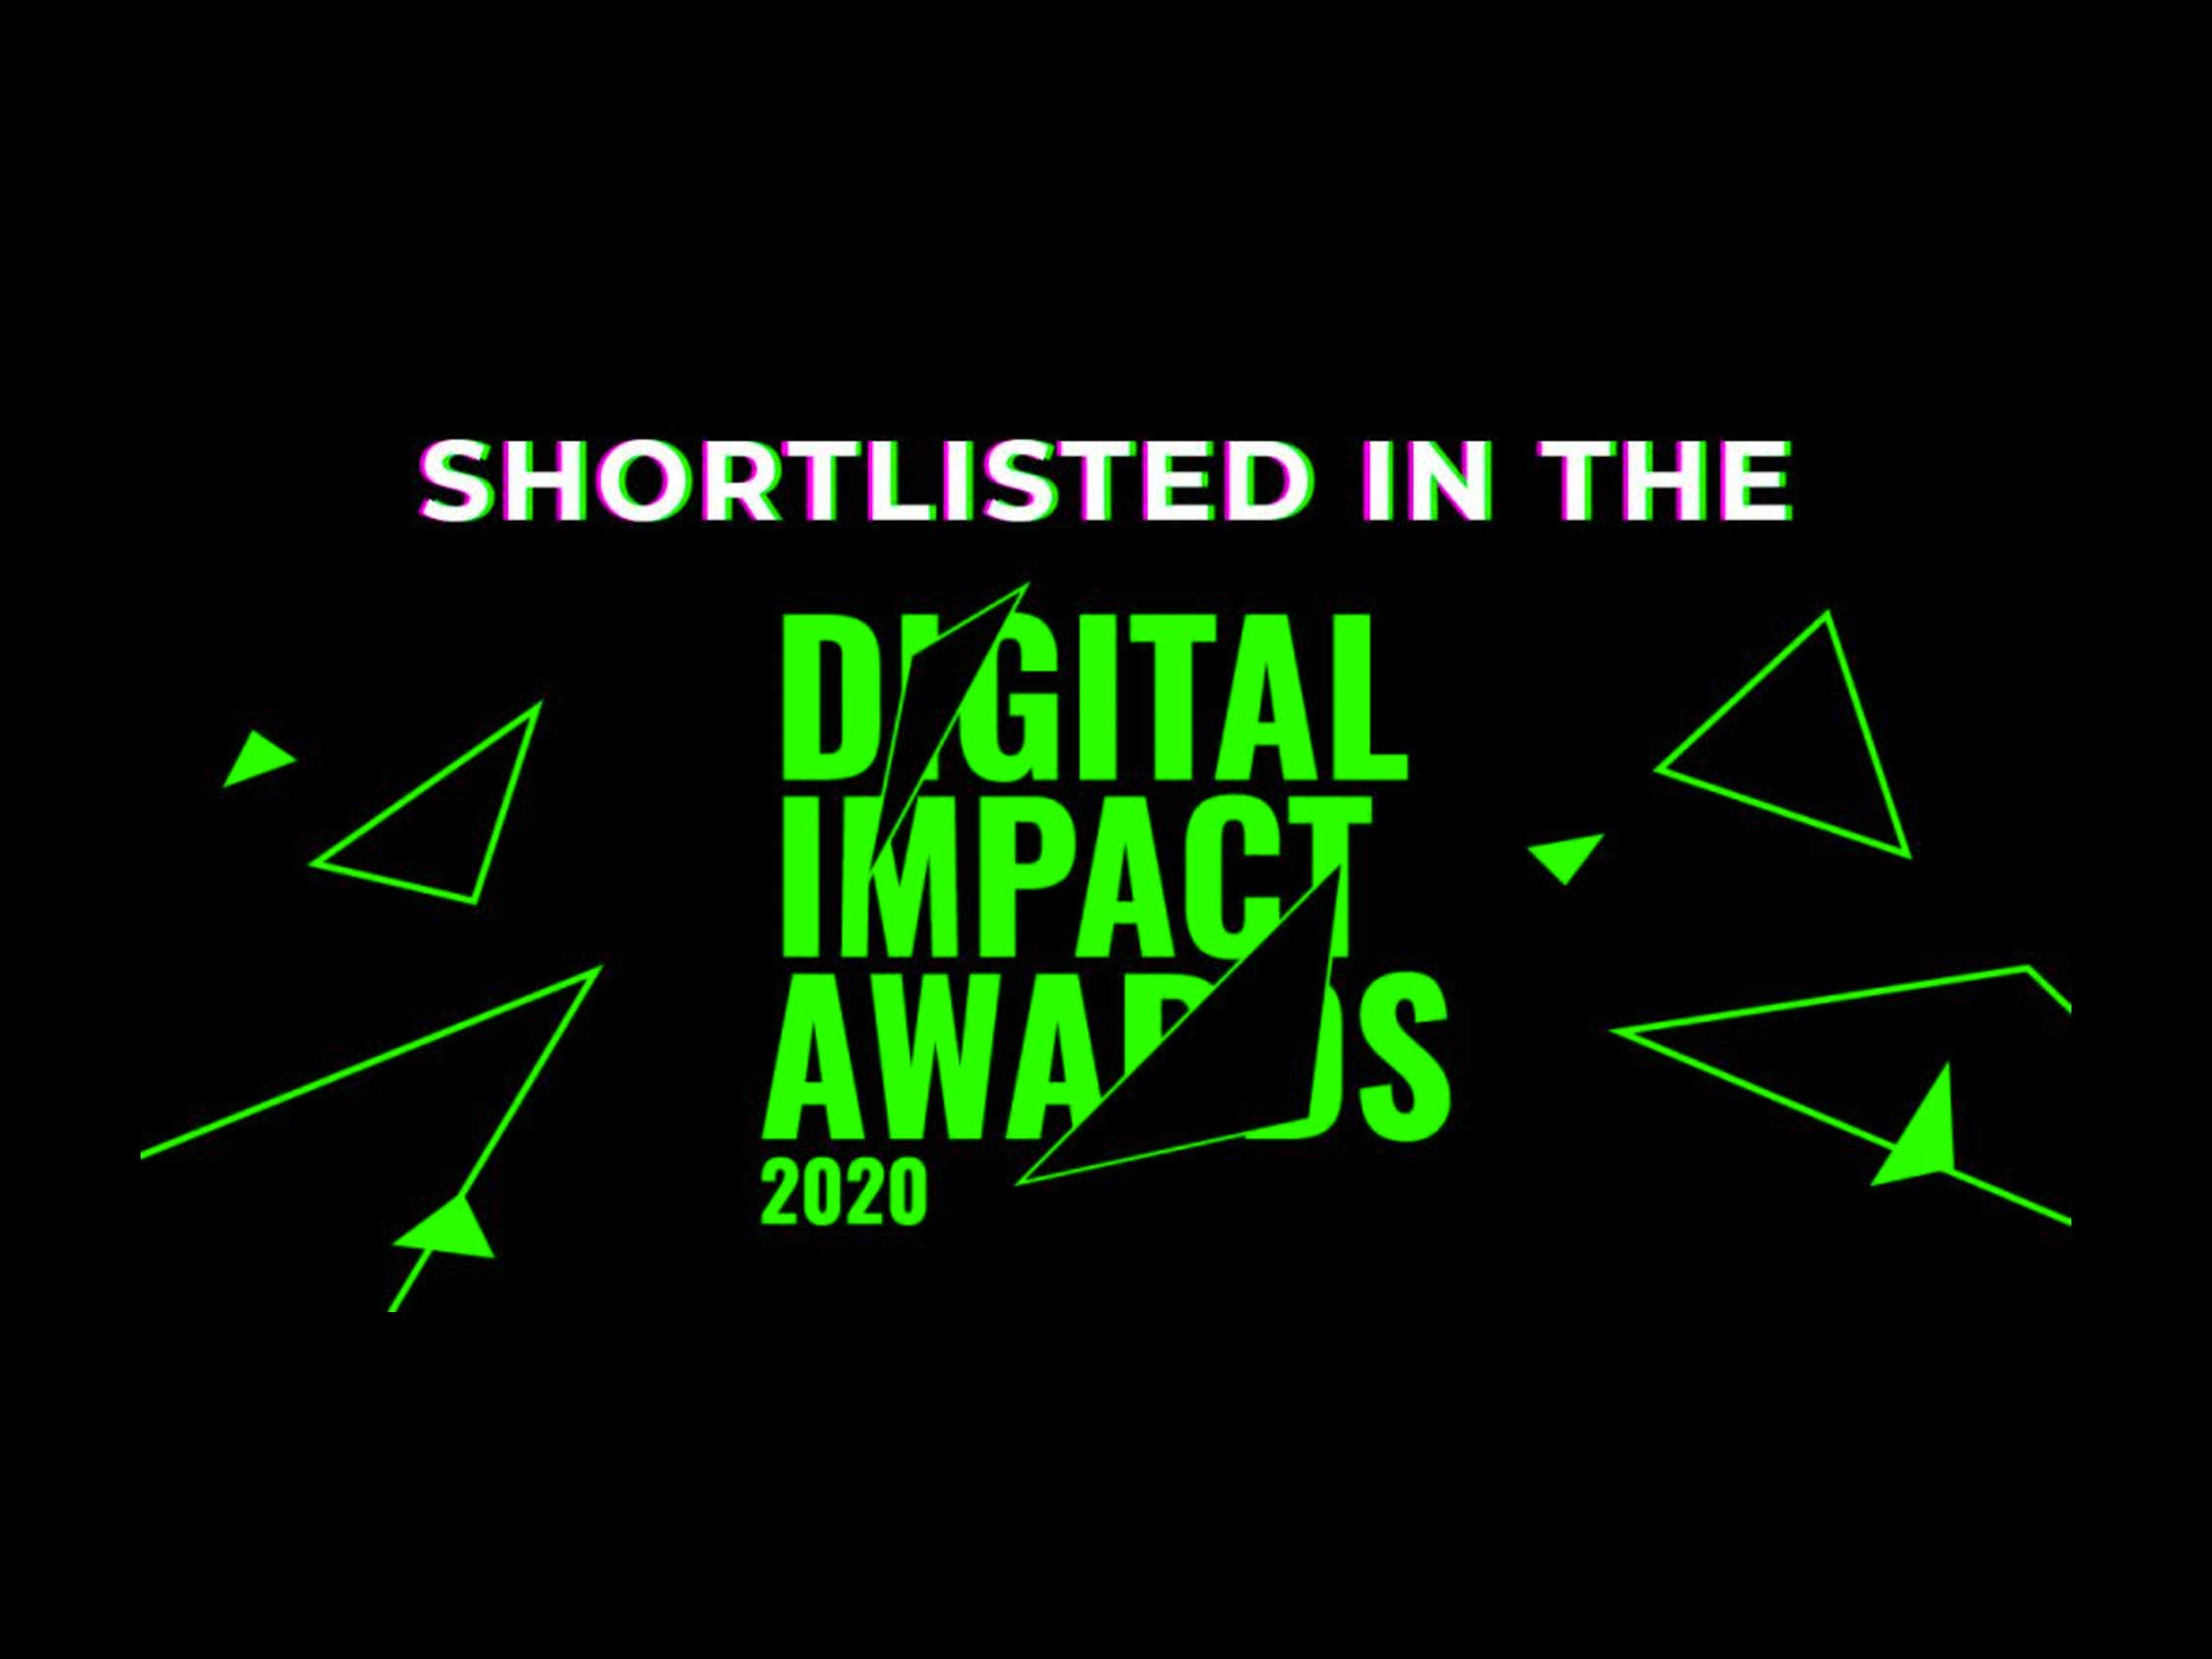 Consider Digital Project with Wintringham shortlisted in the digital impact awards